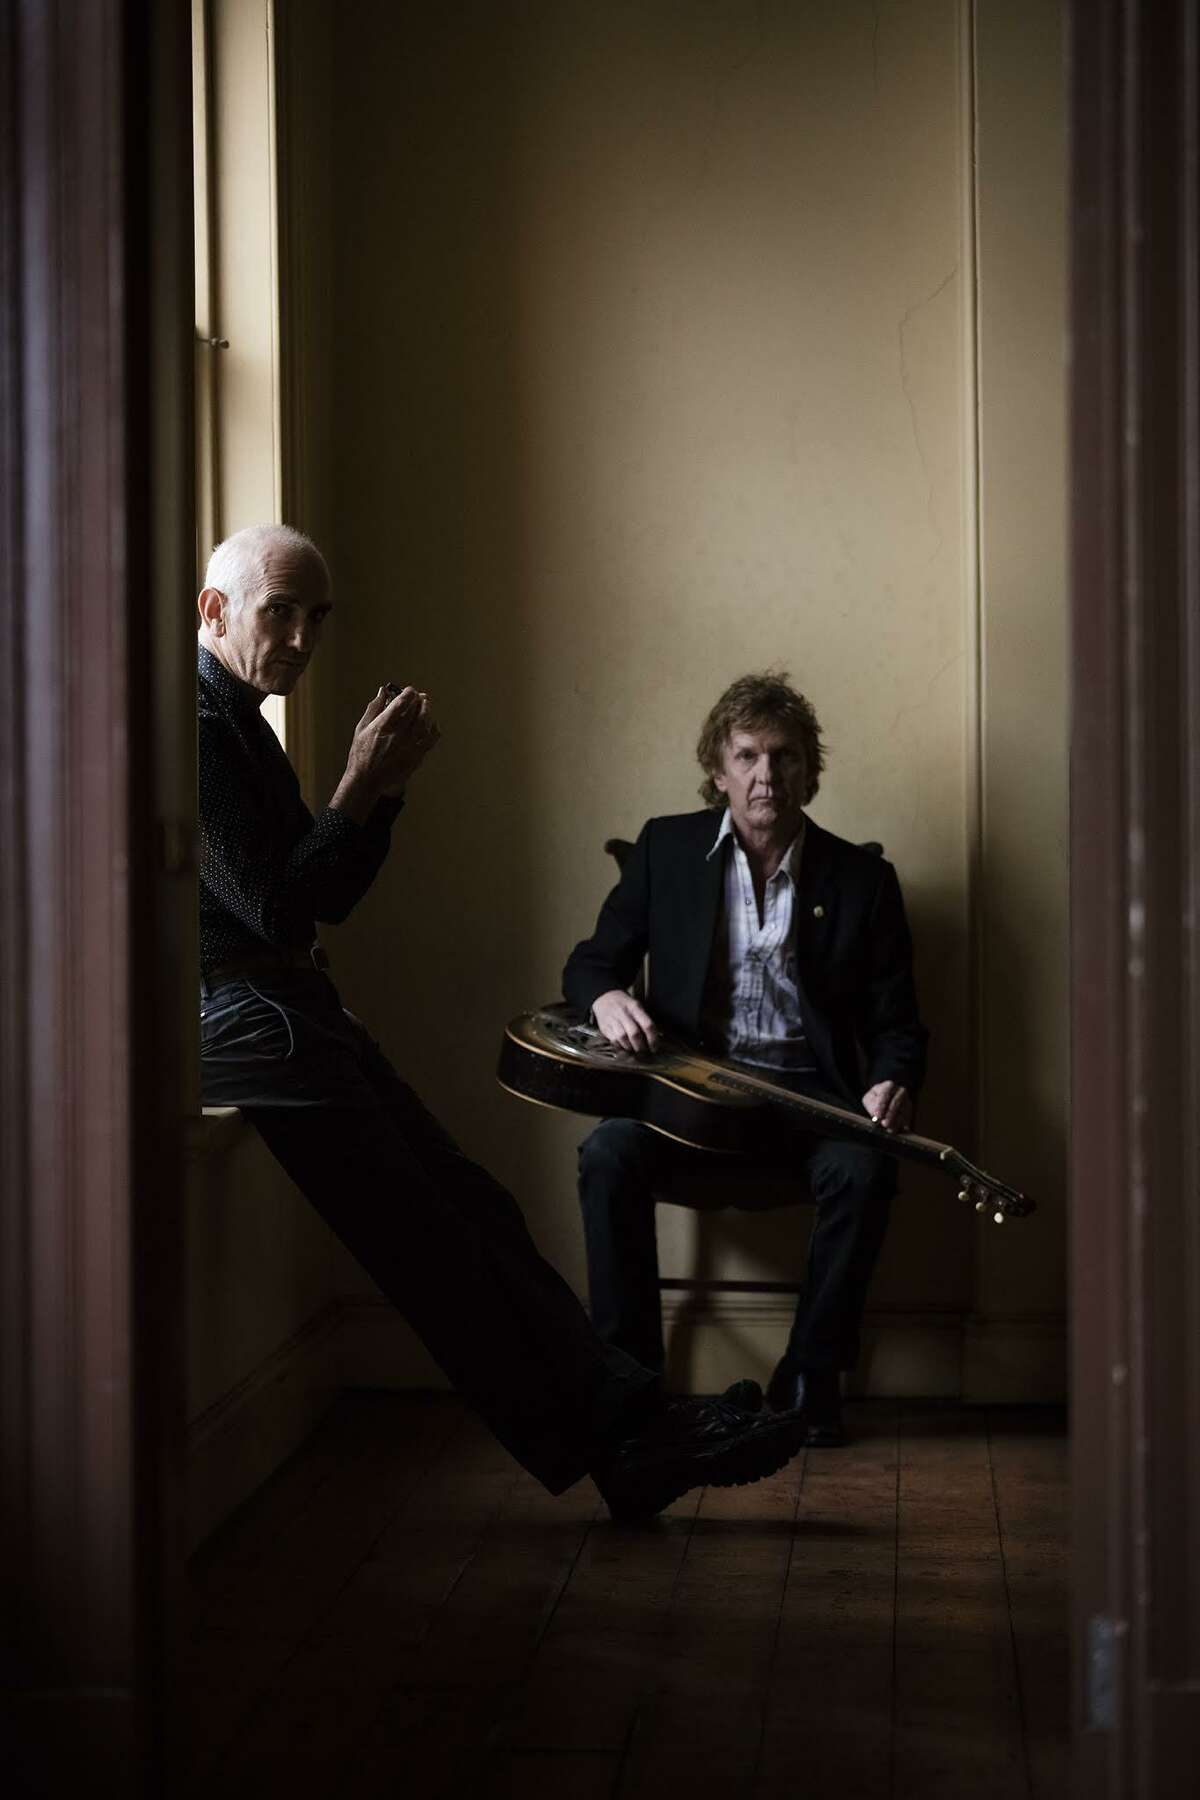 Paul Kelly, left, will be joined by Charlie Owen in a concert at Fairfield Theatre Company's StageOne on Friday, May 12.